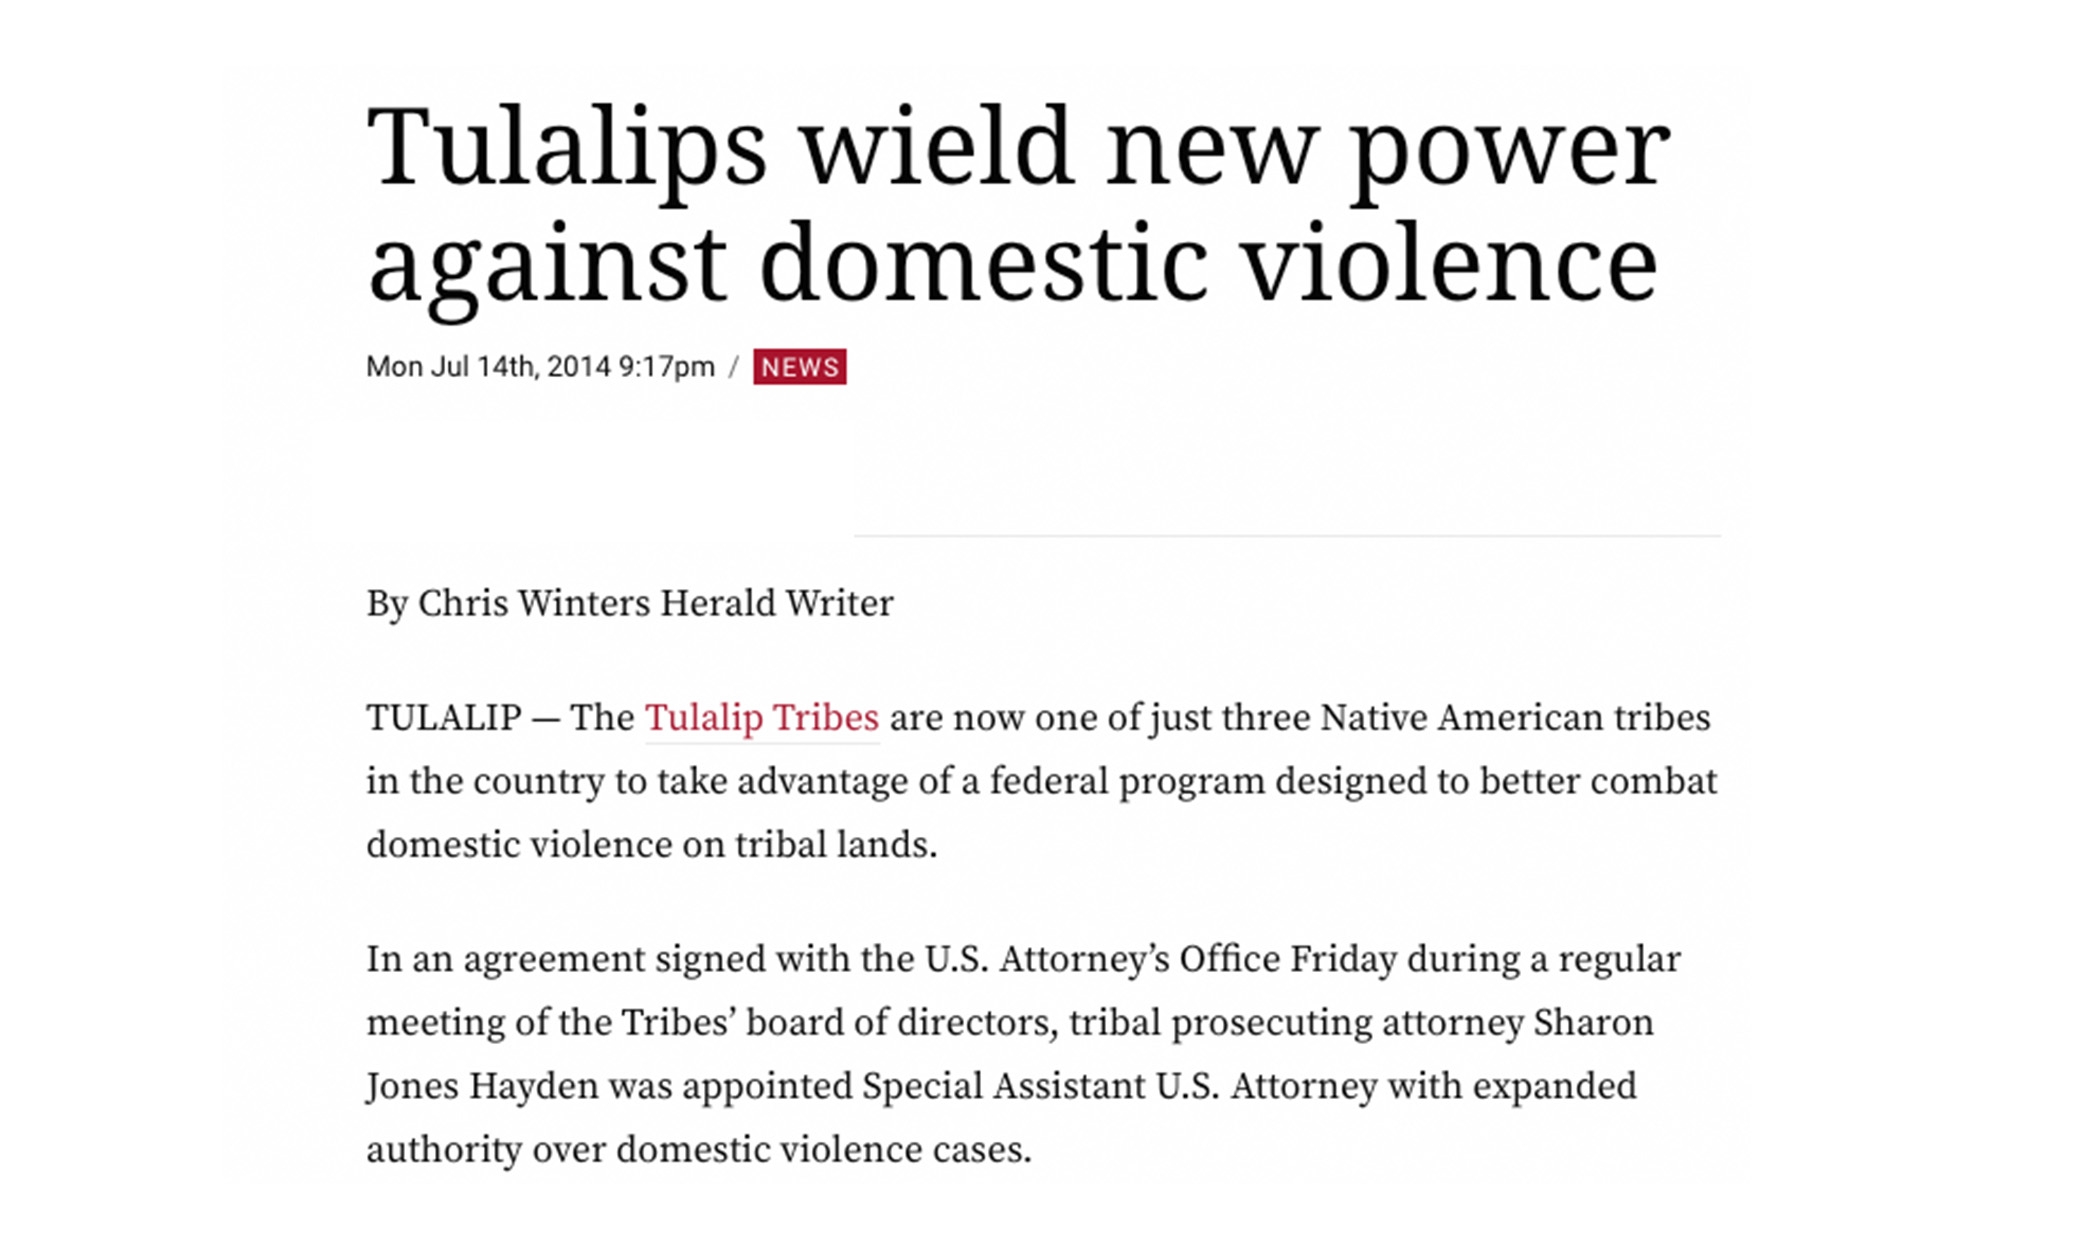 Tulalips wield new power against domestic violence